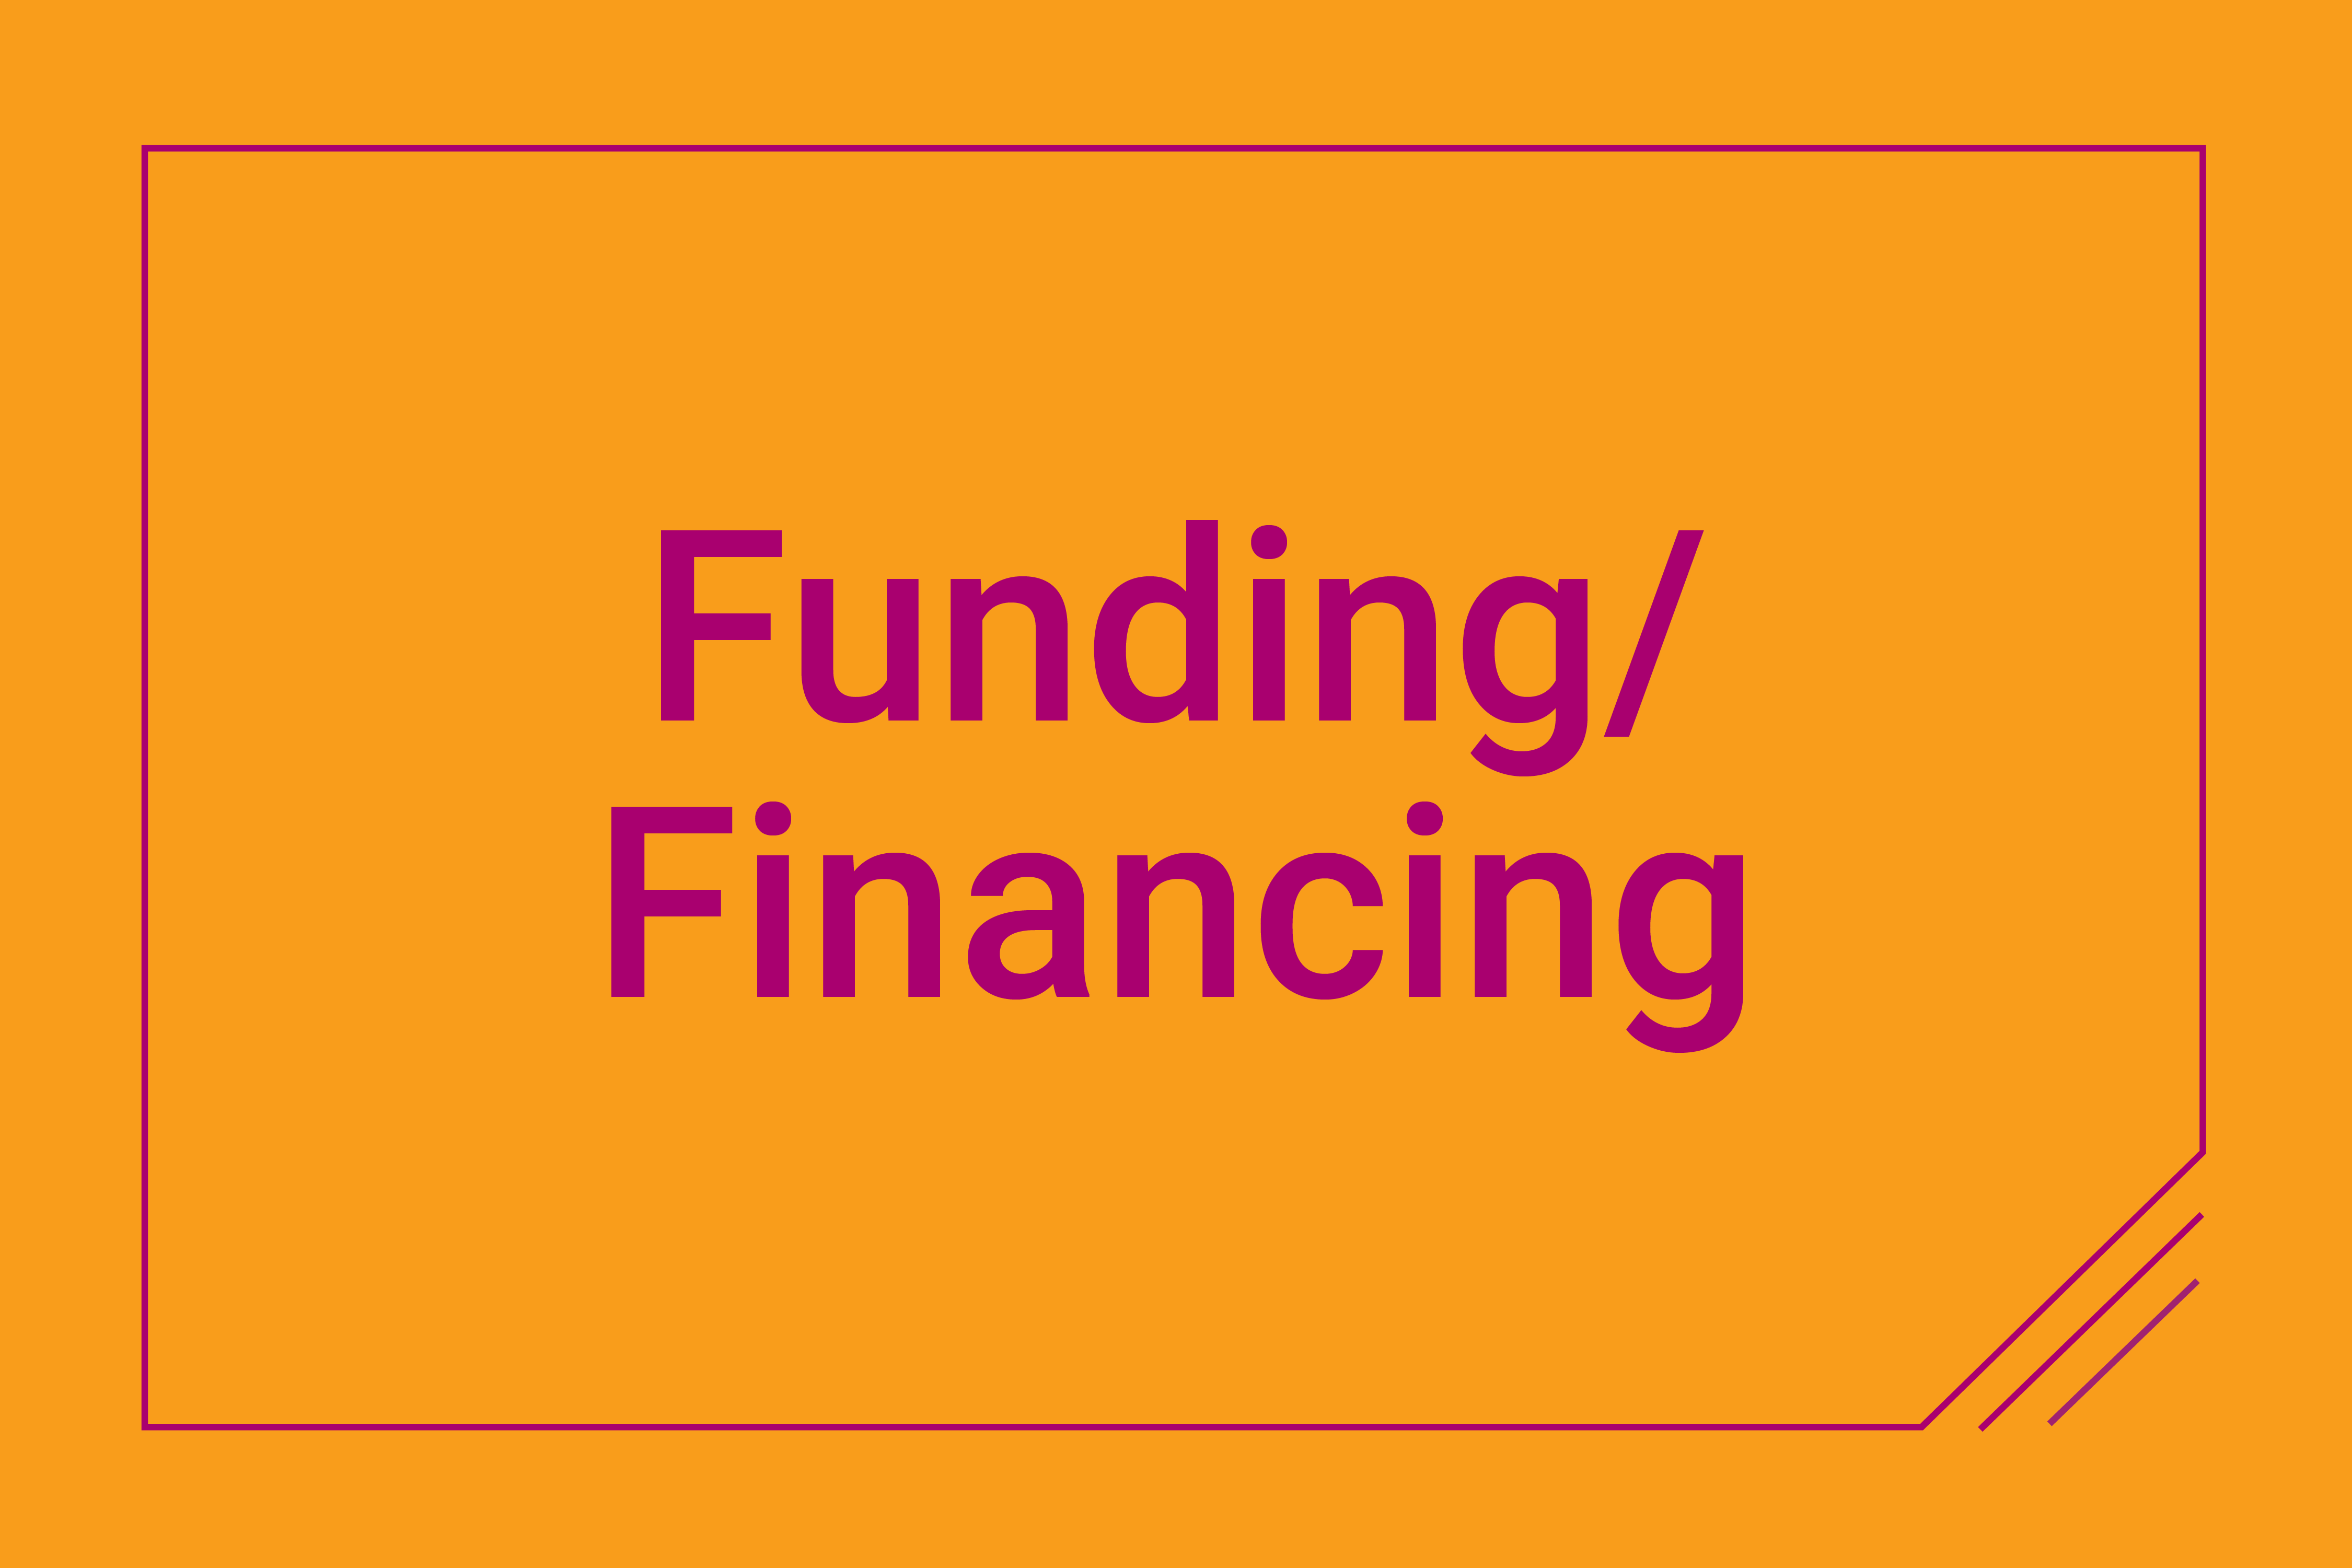 GEWKC Funding and Financing for Your Business